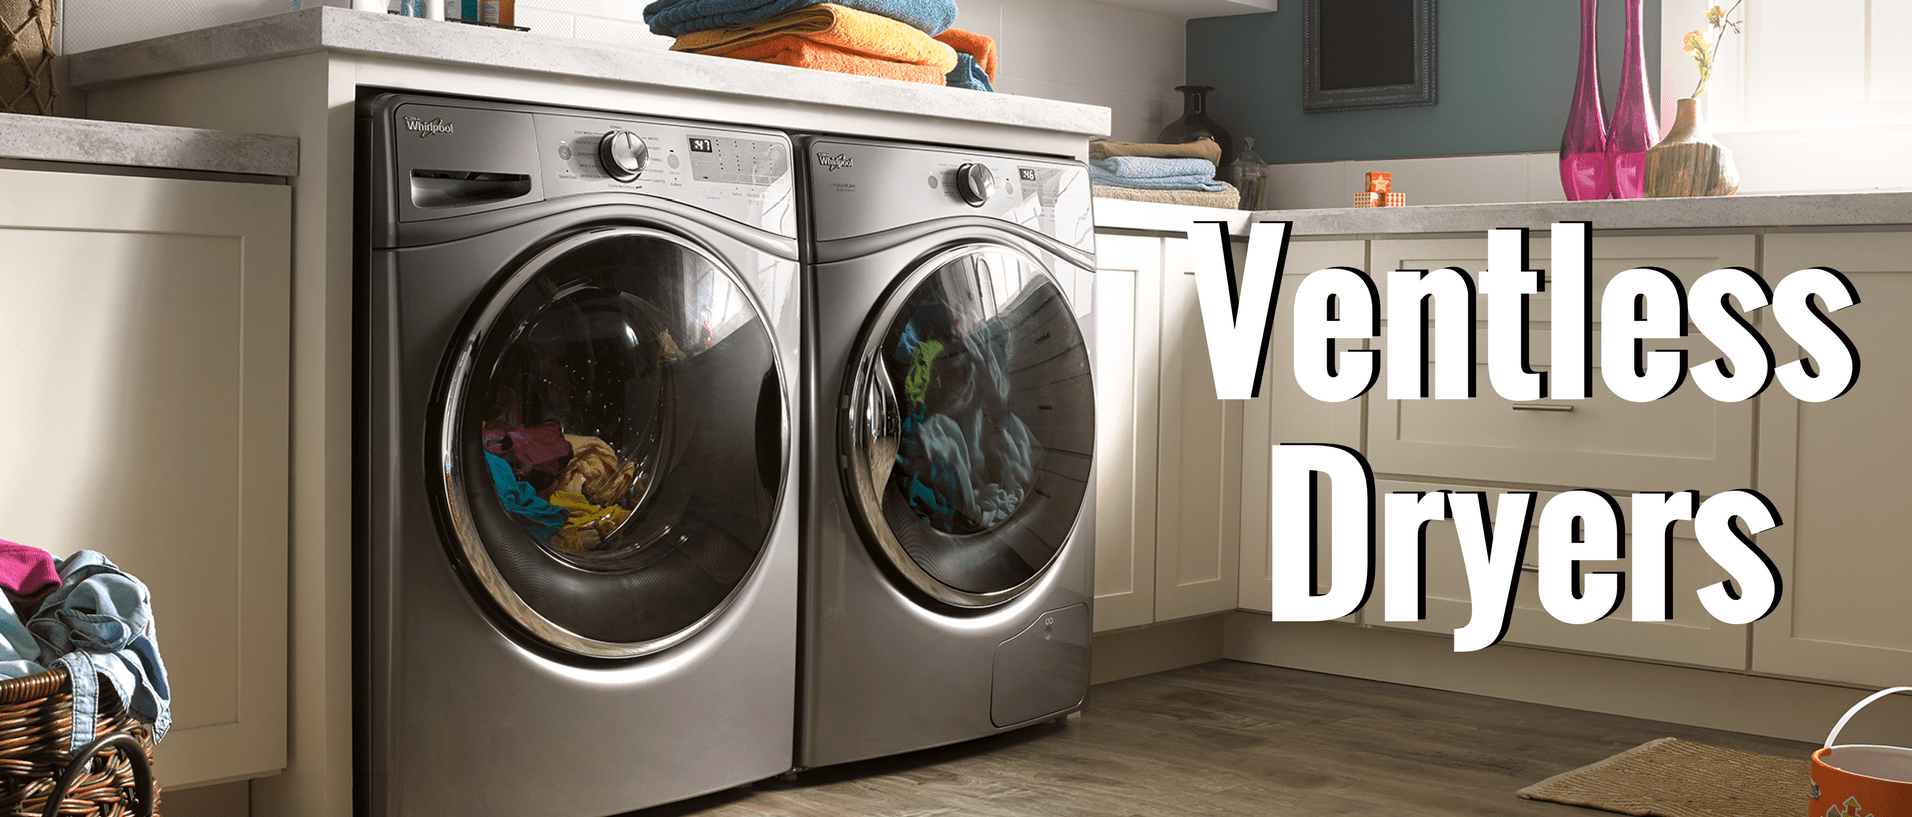 hight resolution of vented vs ventless dryers